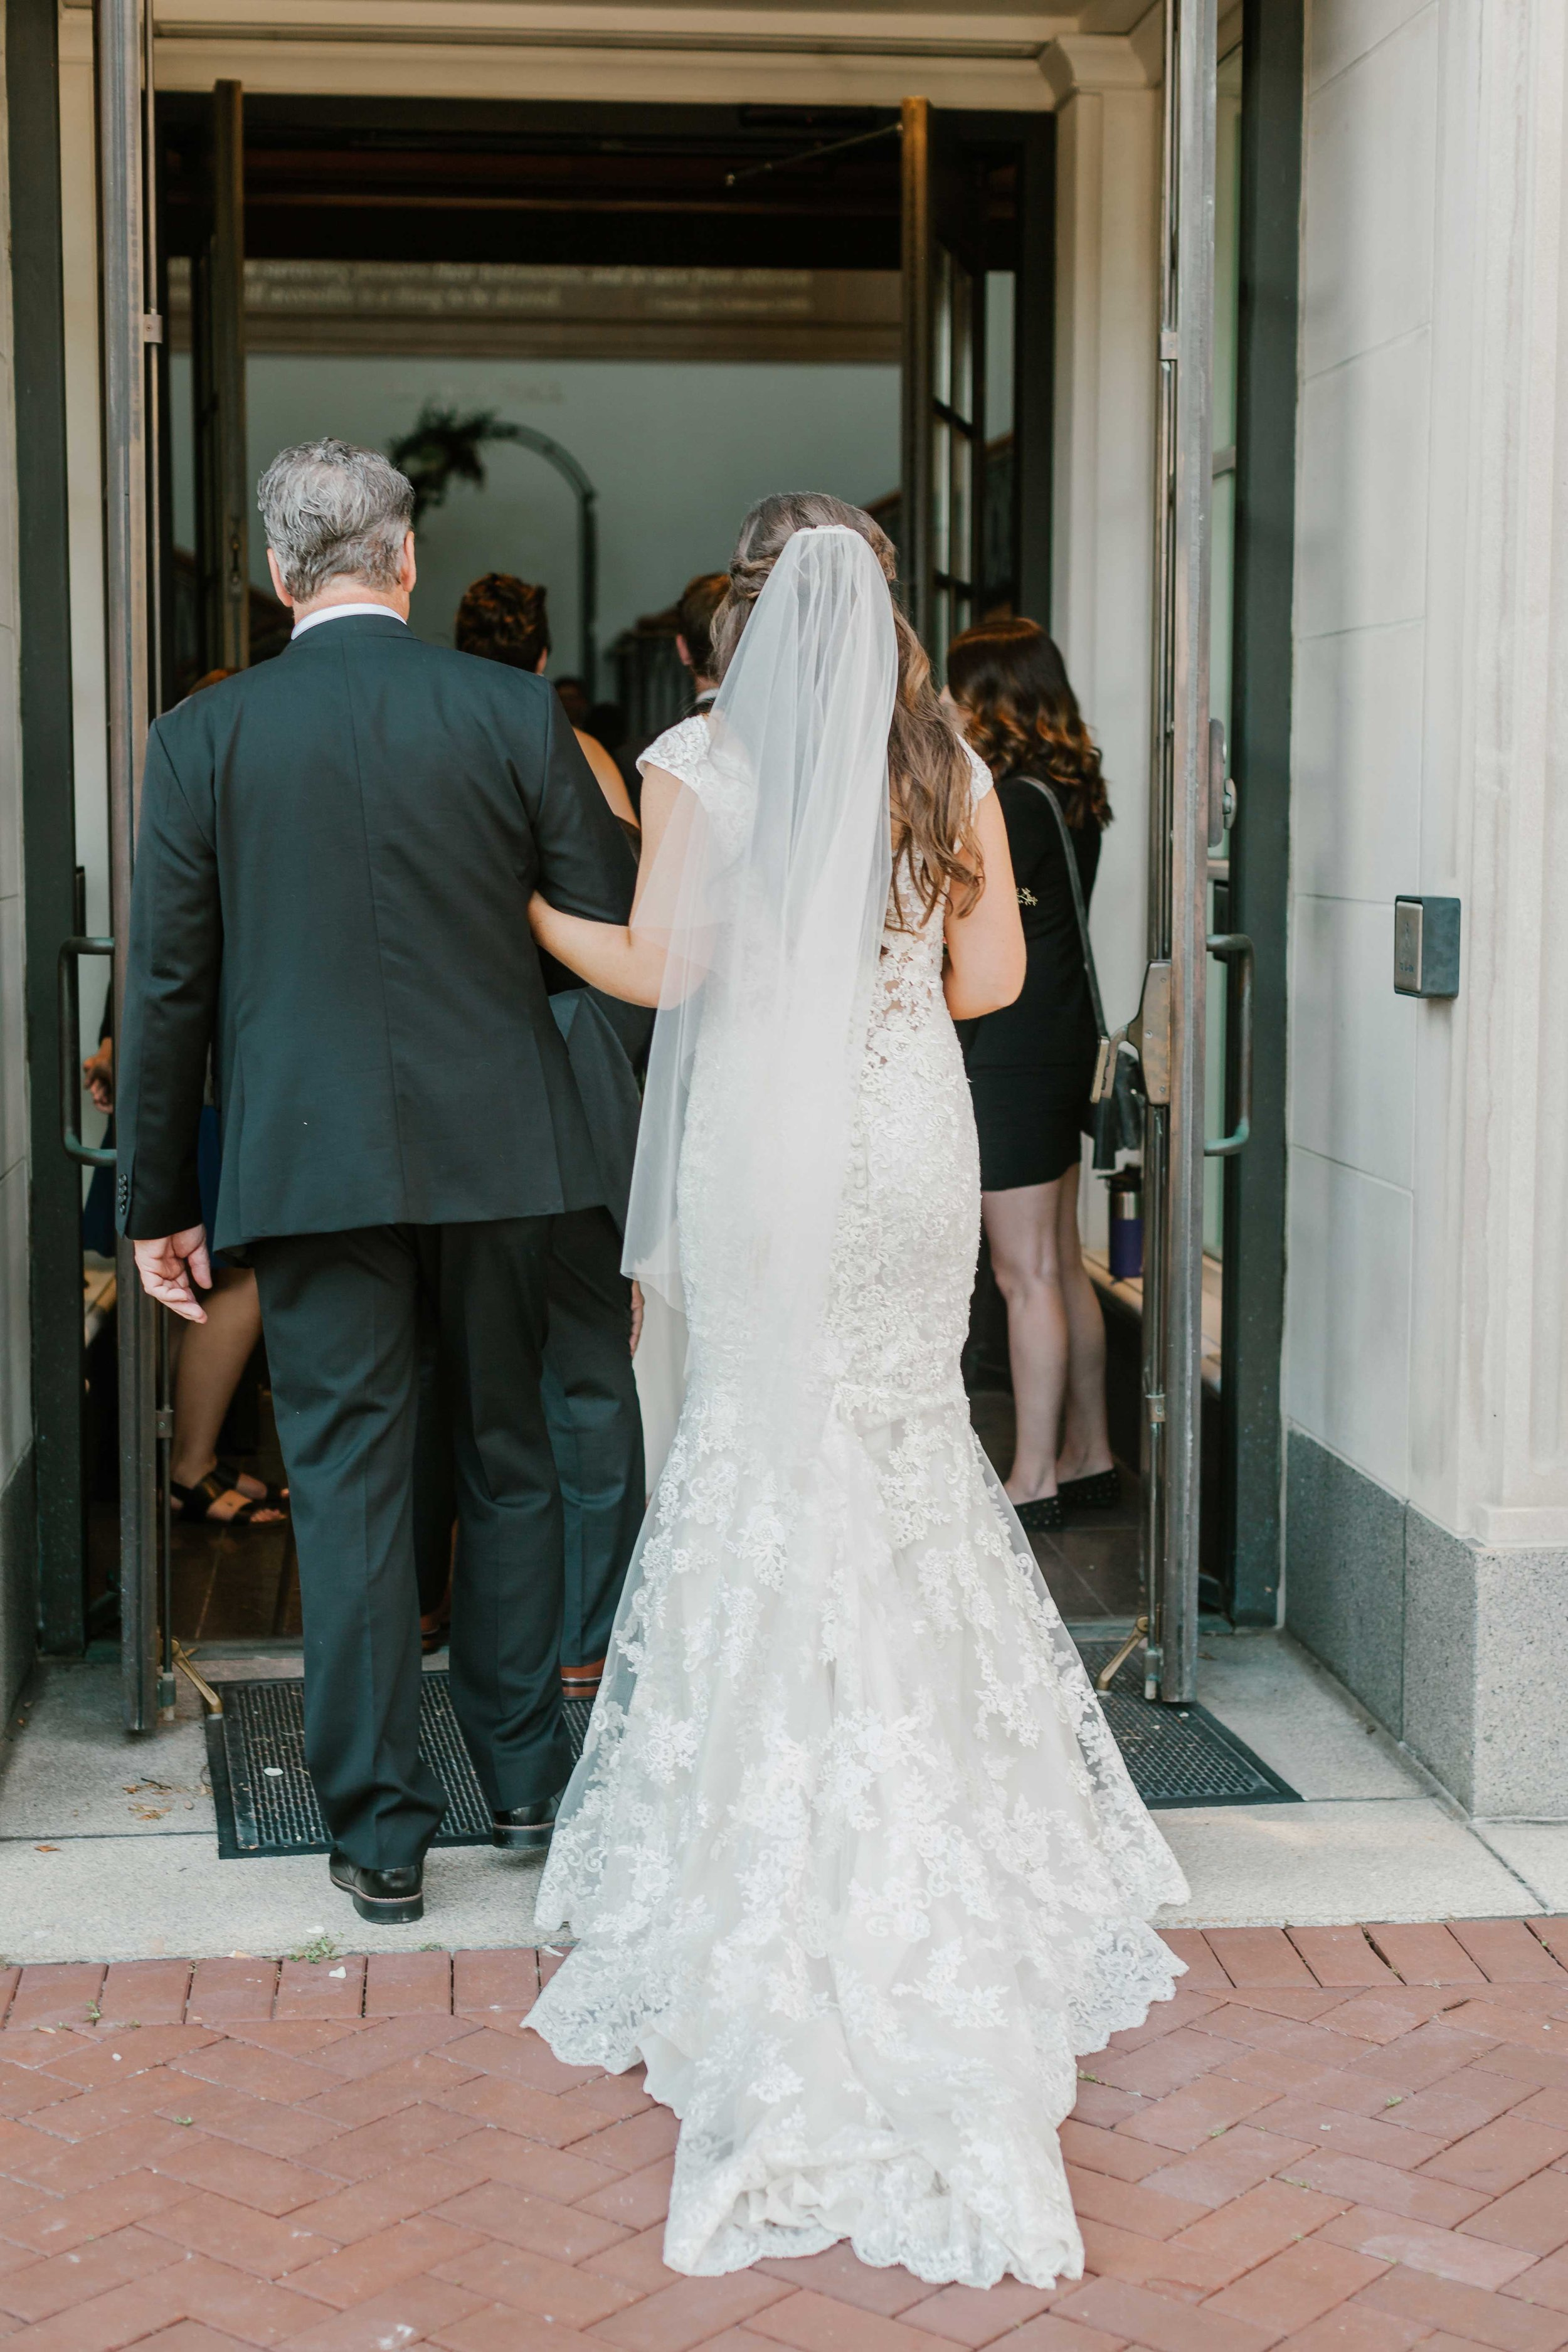 House-of-white-bridal-boutique-real-bride-allure-bridal-gown